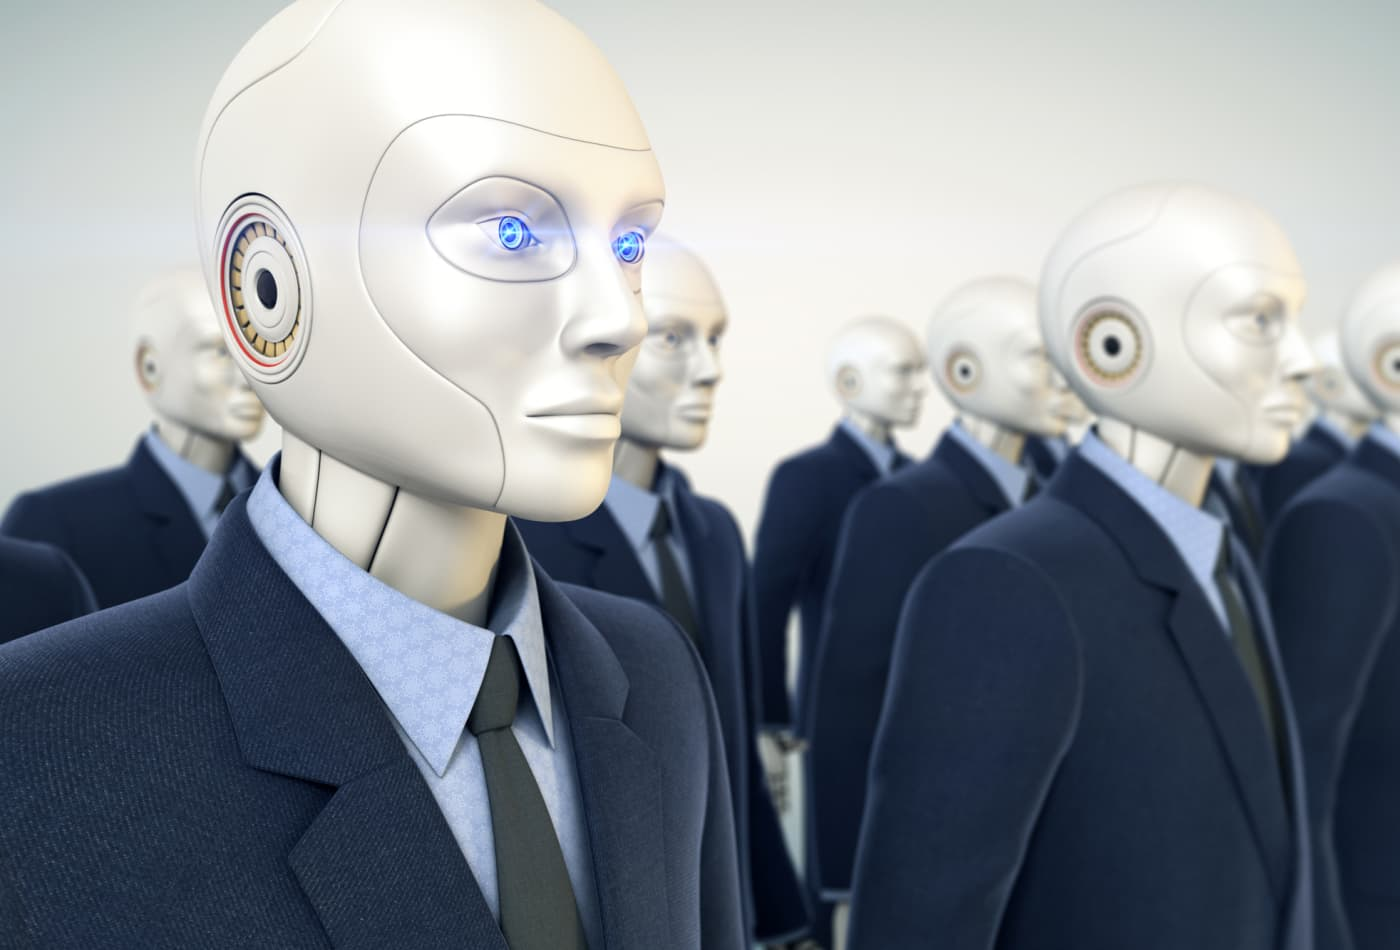 McKinsey: One-third of US workers could be jobless by 2030 due to automation